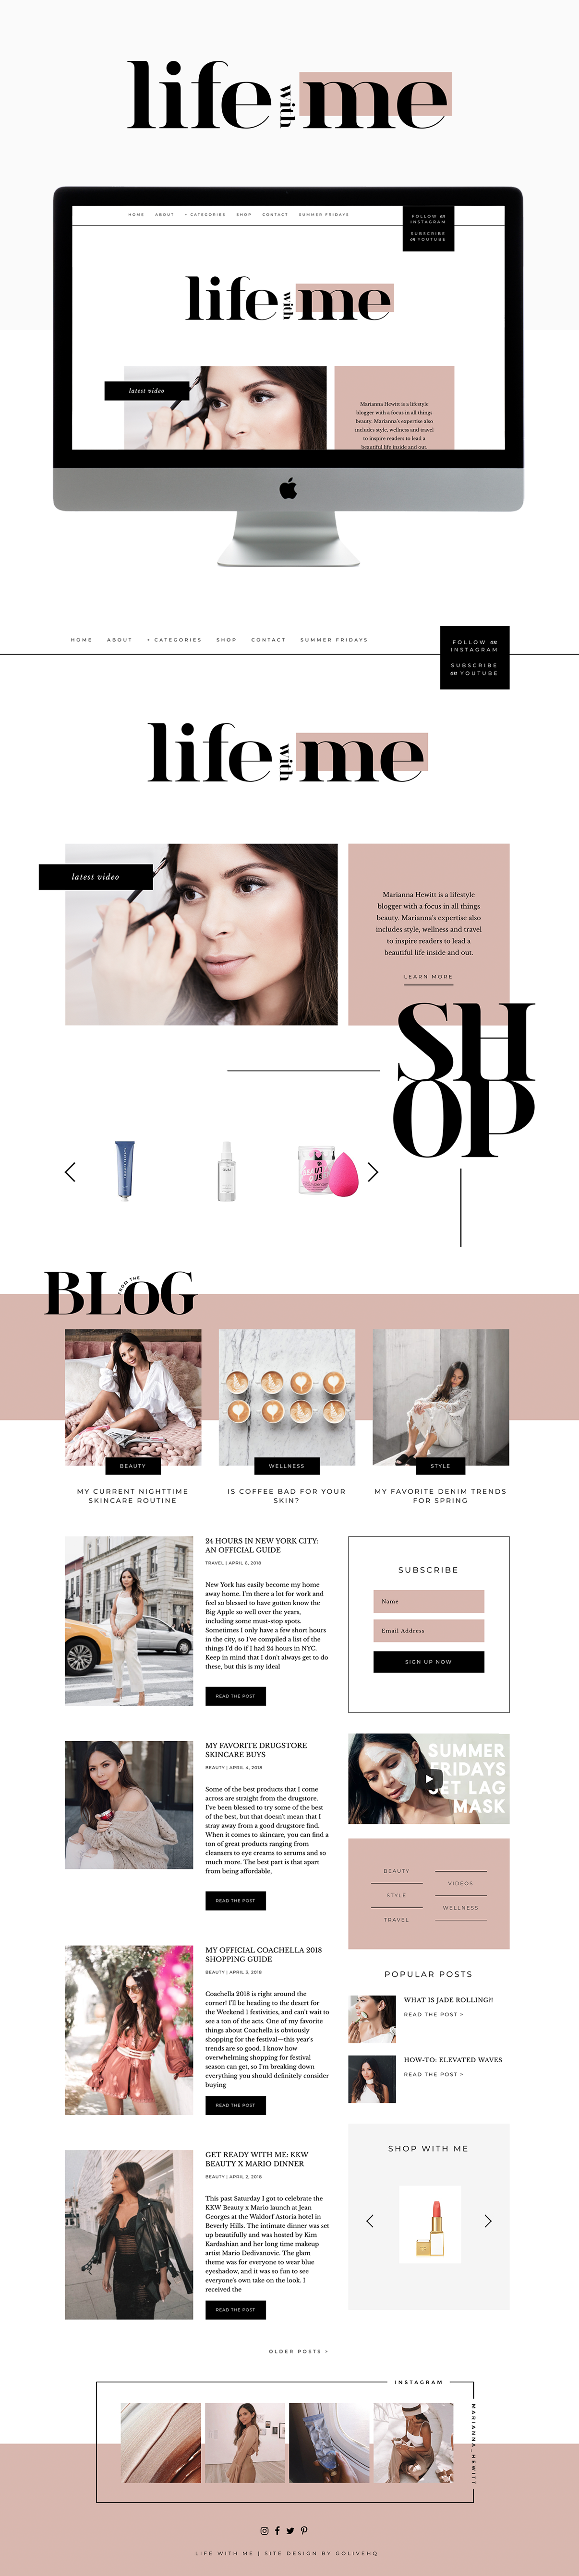 Best Website For Lifestyle and Beauty Blogger Marianna Hewwit of Life With Me   Design By Go Live HQ.png